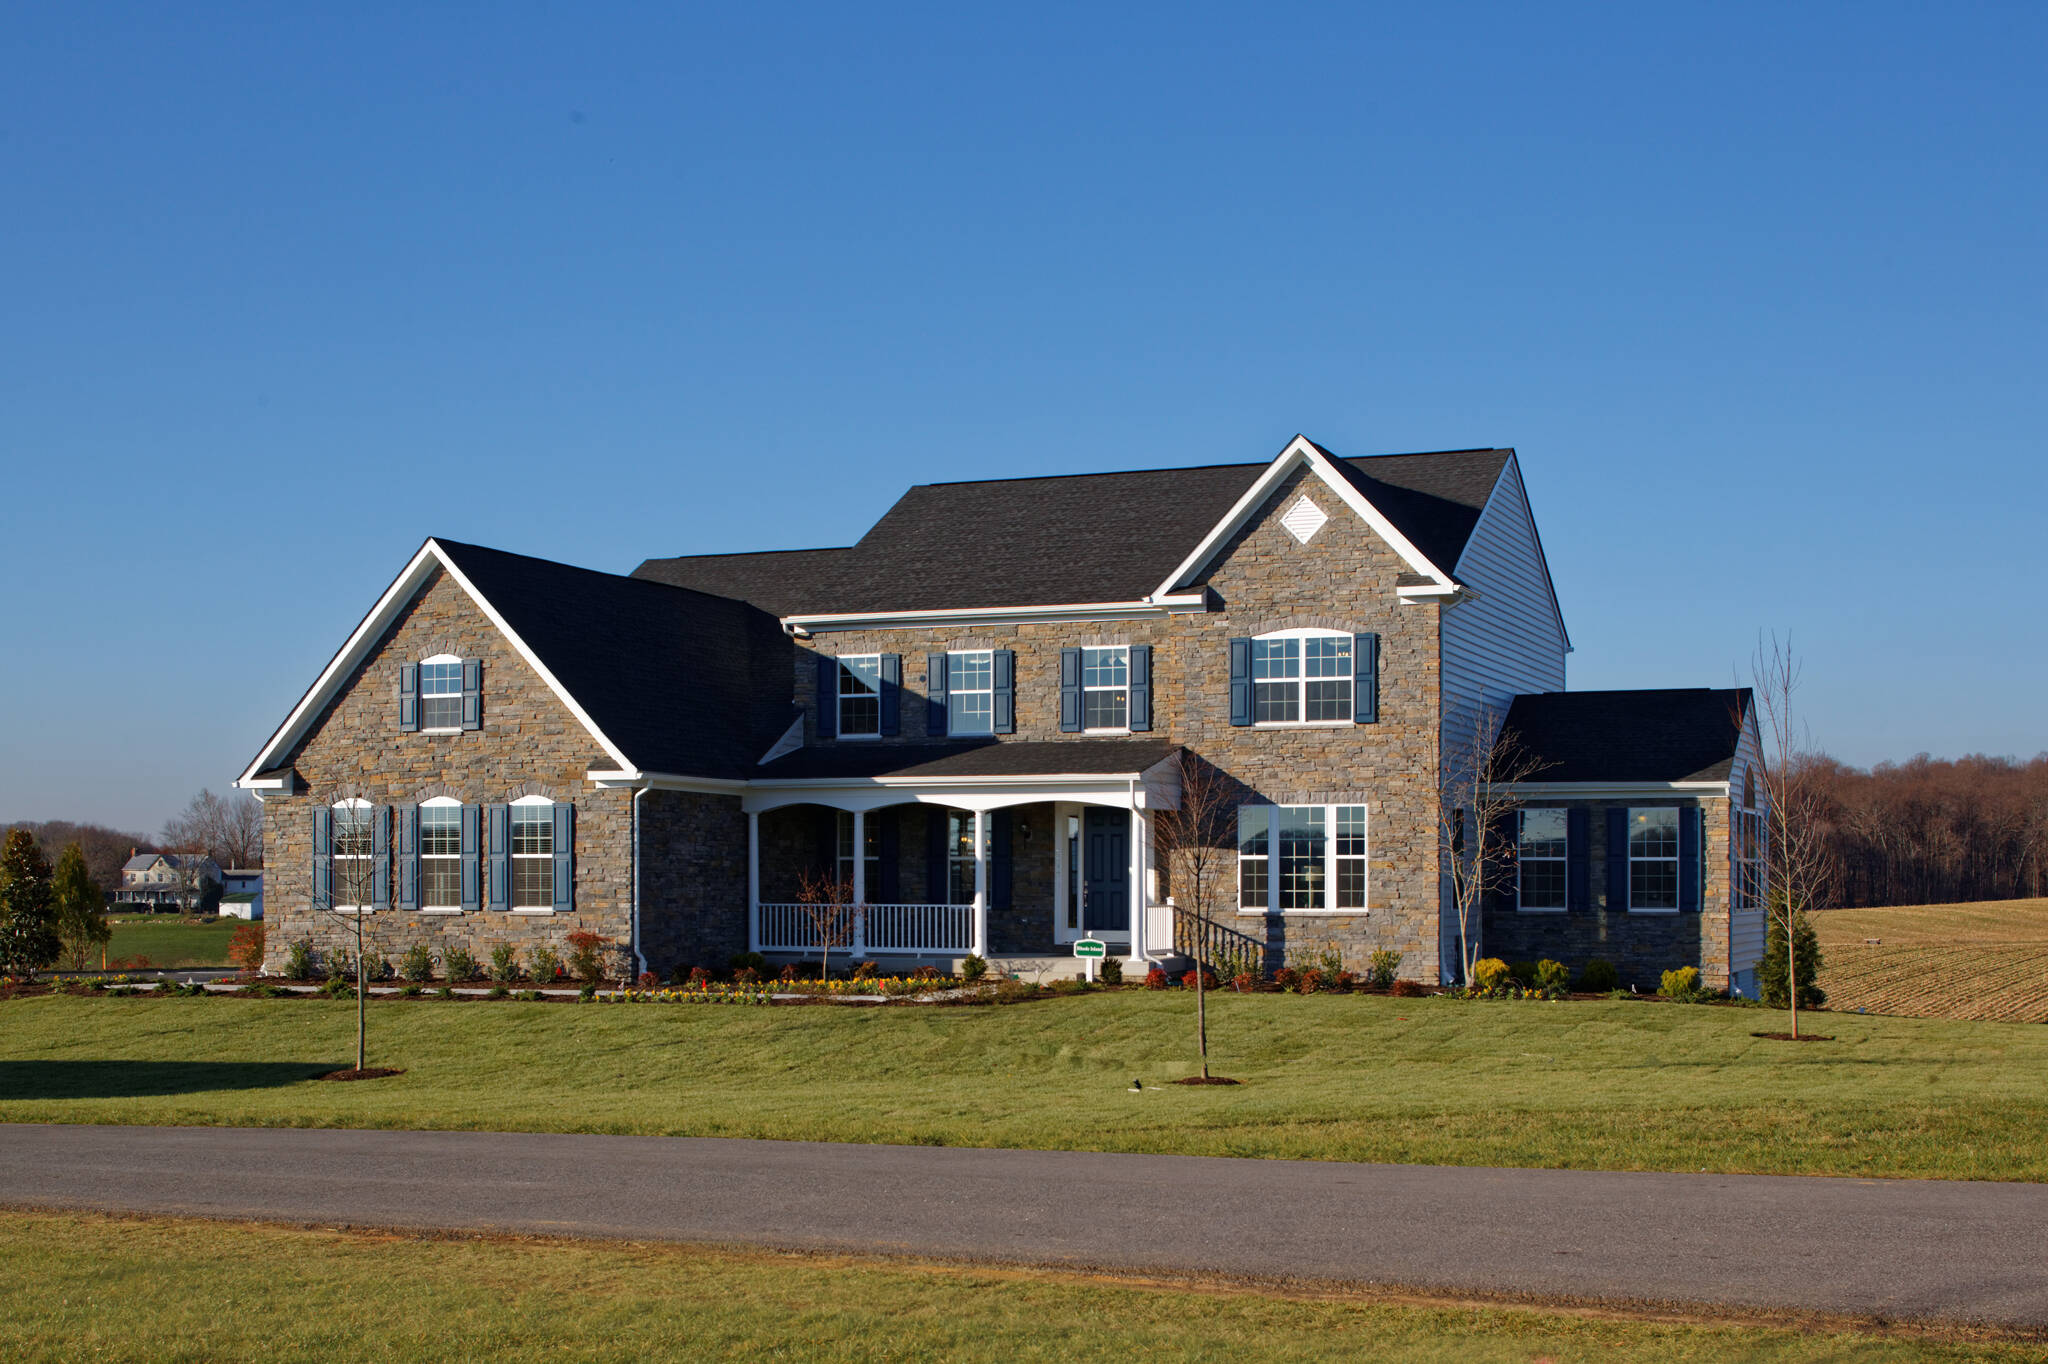 rhode island country 6610 new home at chimney rock in maryland thumb